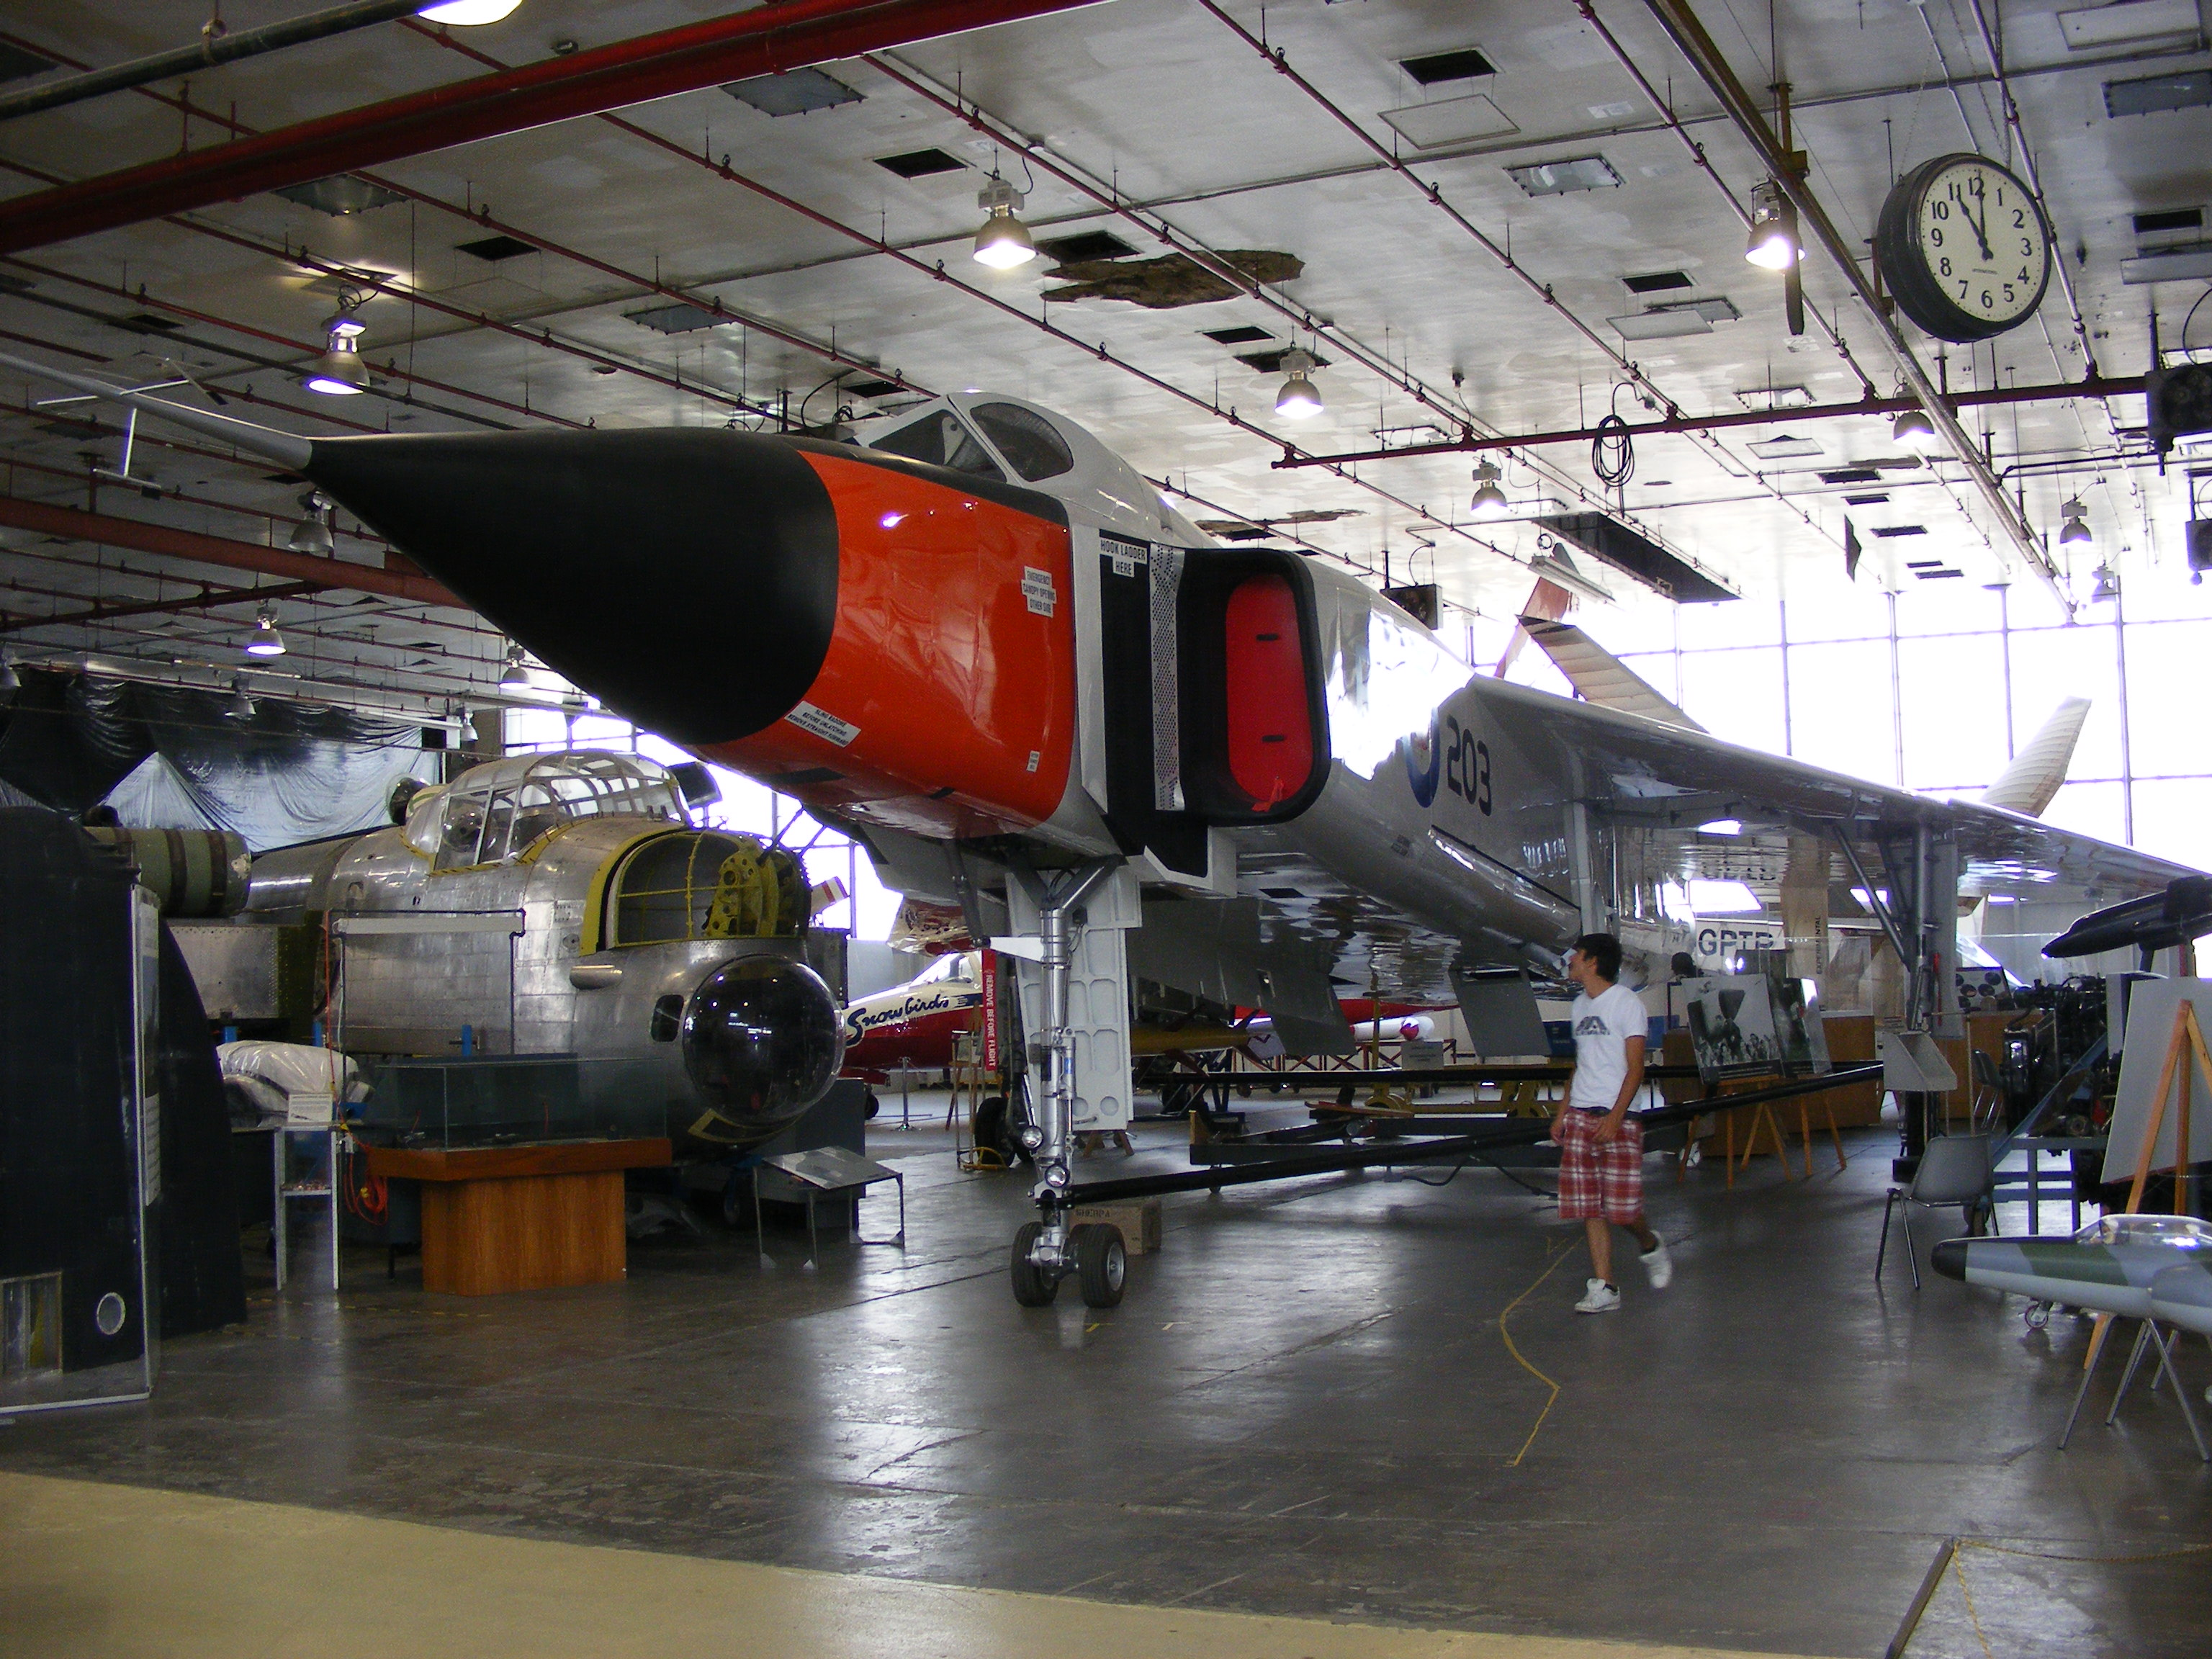 A view inside the Canadian Air & Space Museum's old home, inside the now-demolished historic deHavilland Canada factory hangars at Downsview Airport. (photo via Wikipedia)